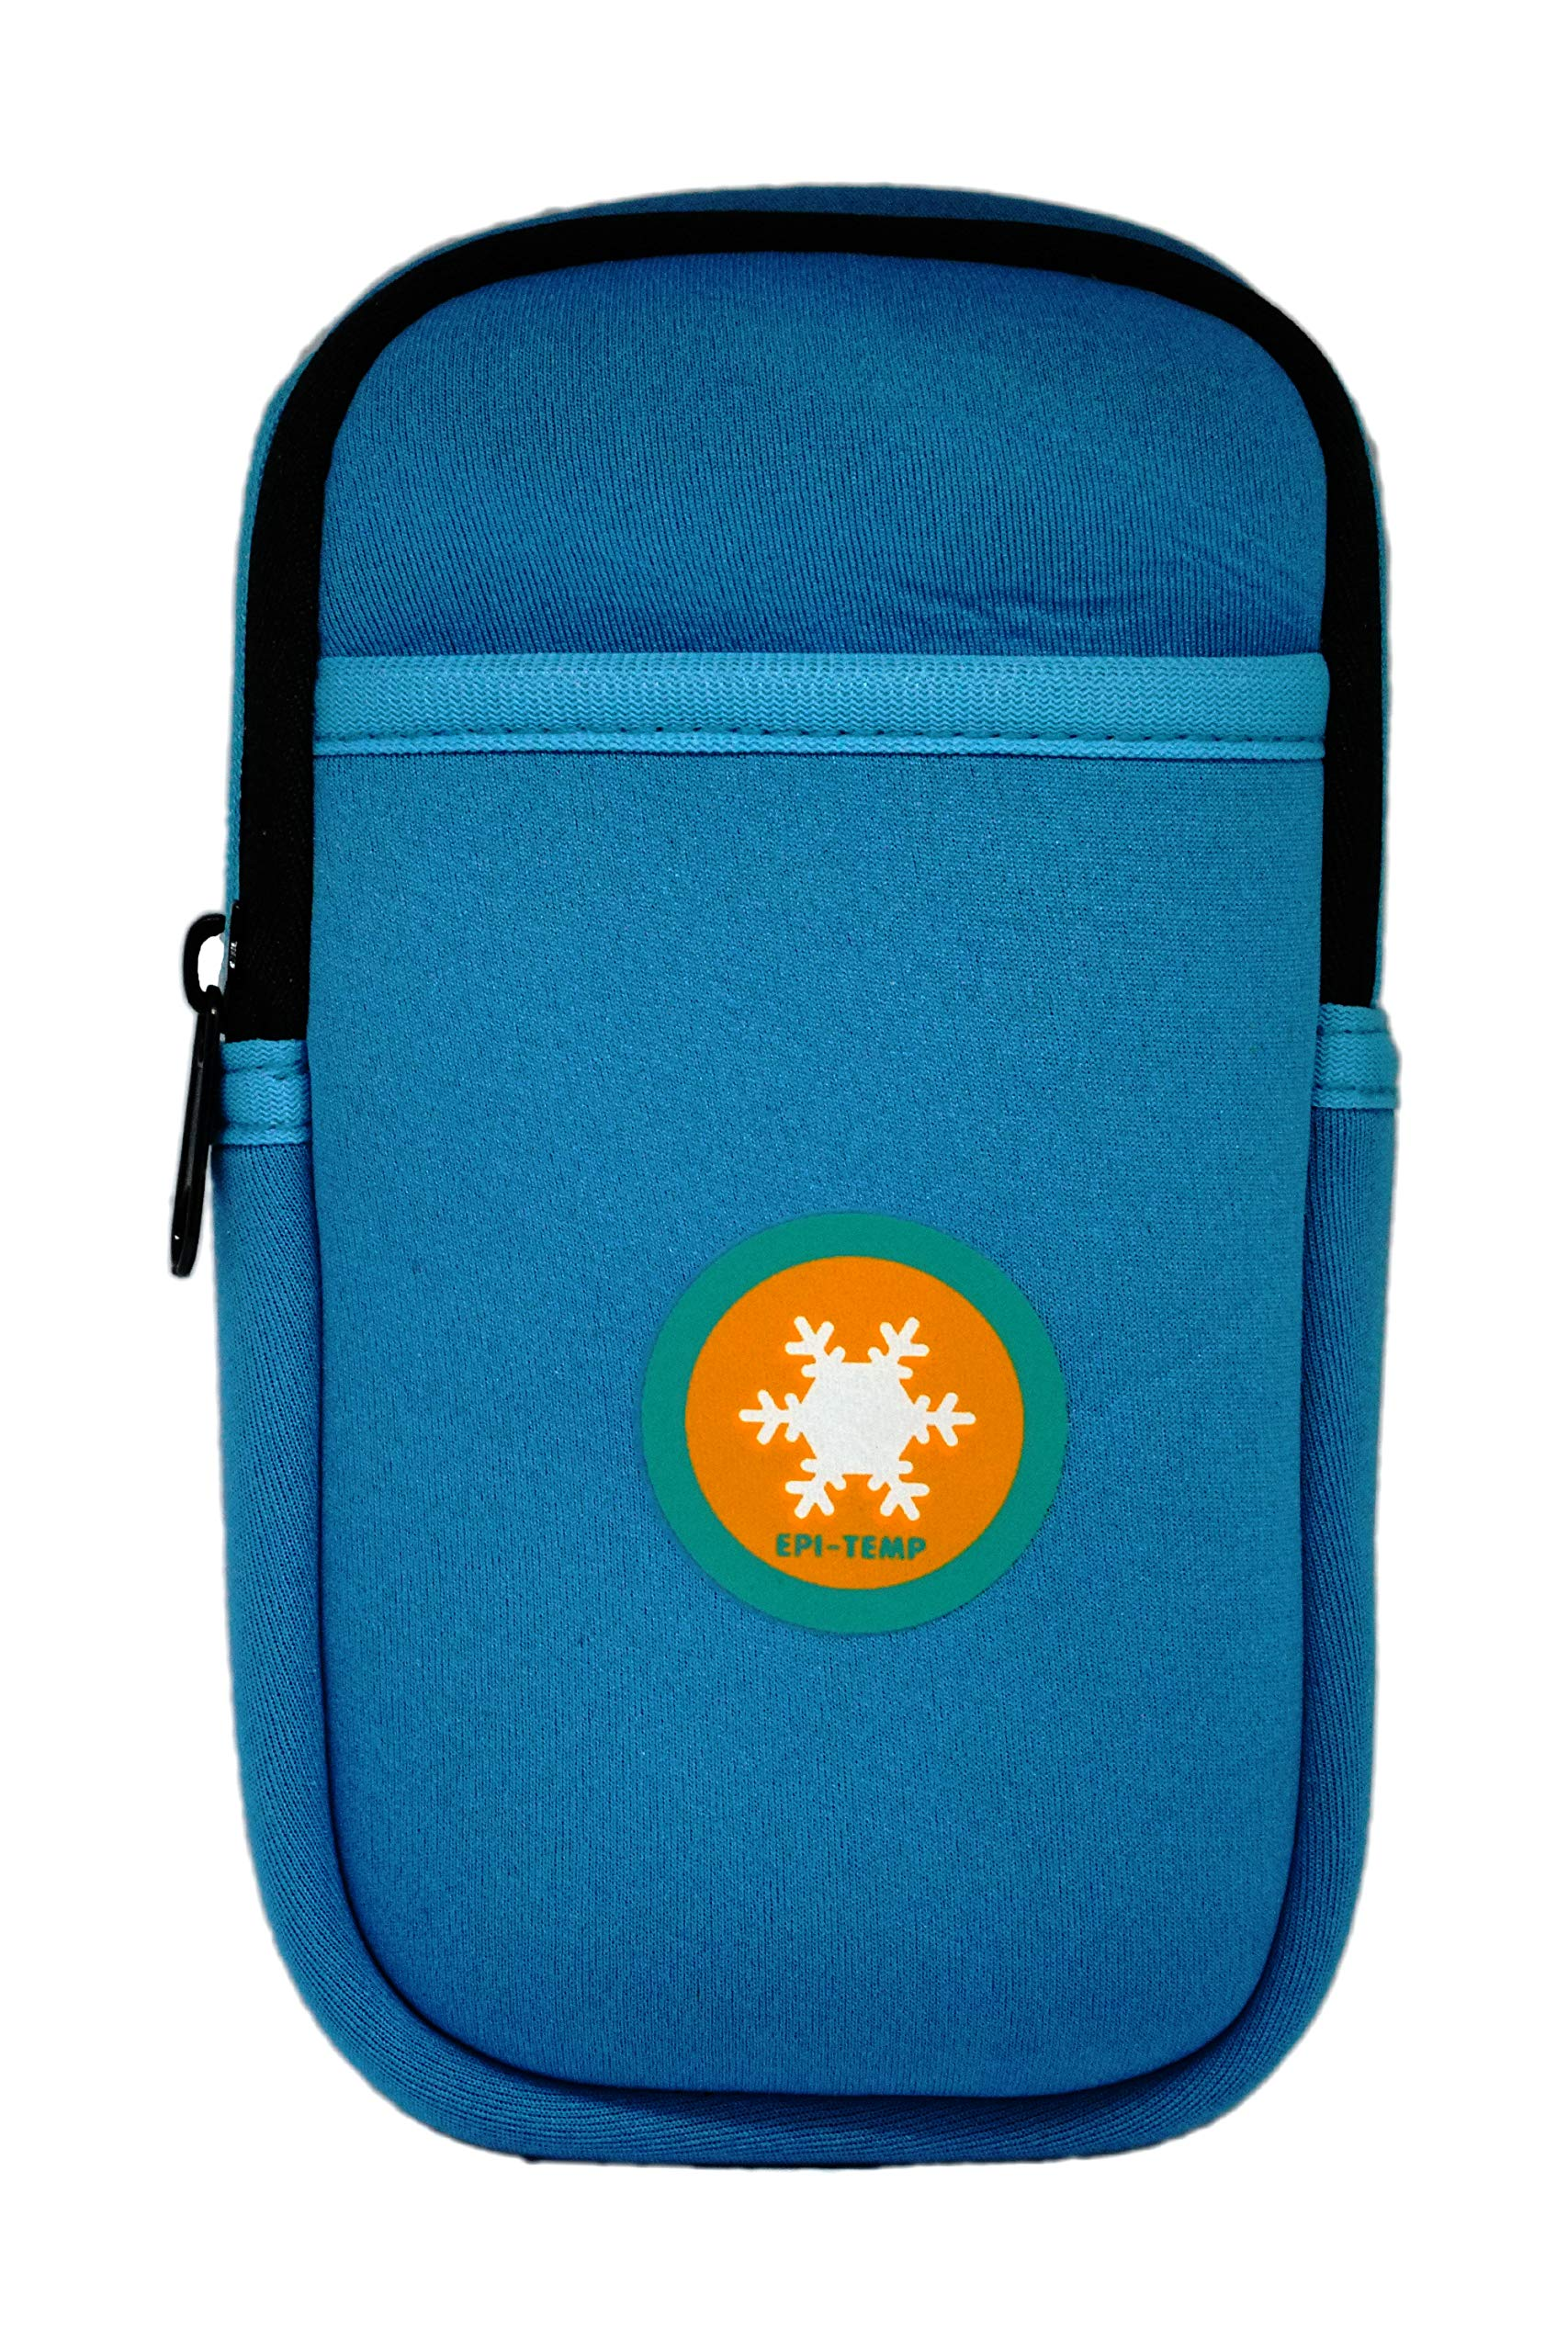 EPI-TEMP Epipen Insulated Case for Kids, Adults - Smart Carrying Pouch, Storage Bag, Powered by PureTemp Phase Change Material to Keep Epinephrine in Safe Temperature Range (Teal) by EPI-TEMP (Image #1)